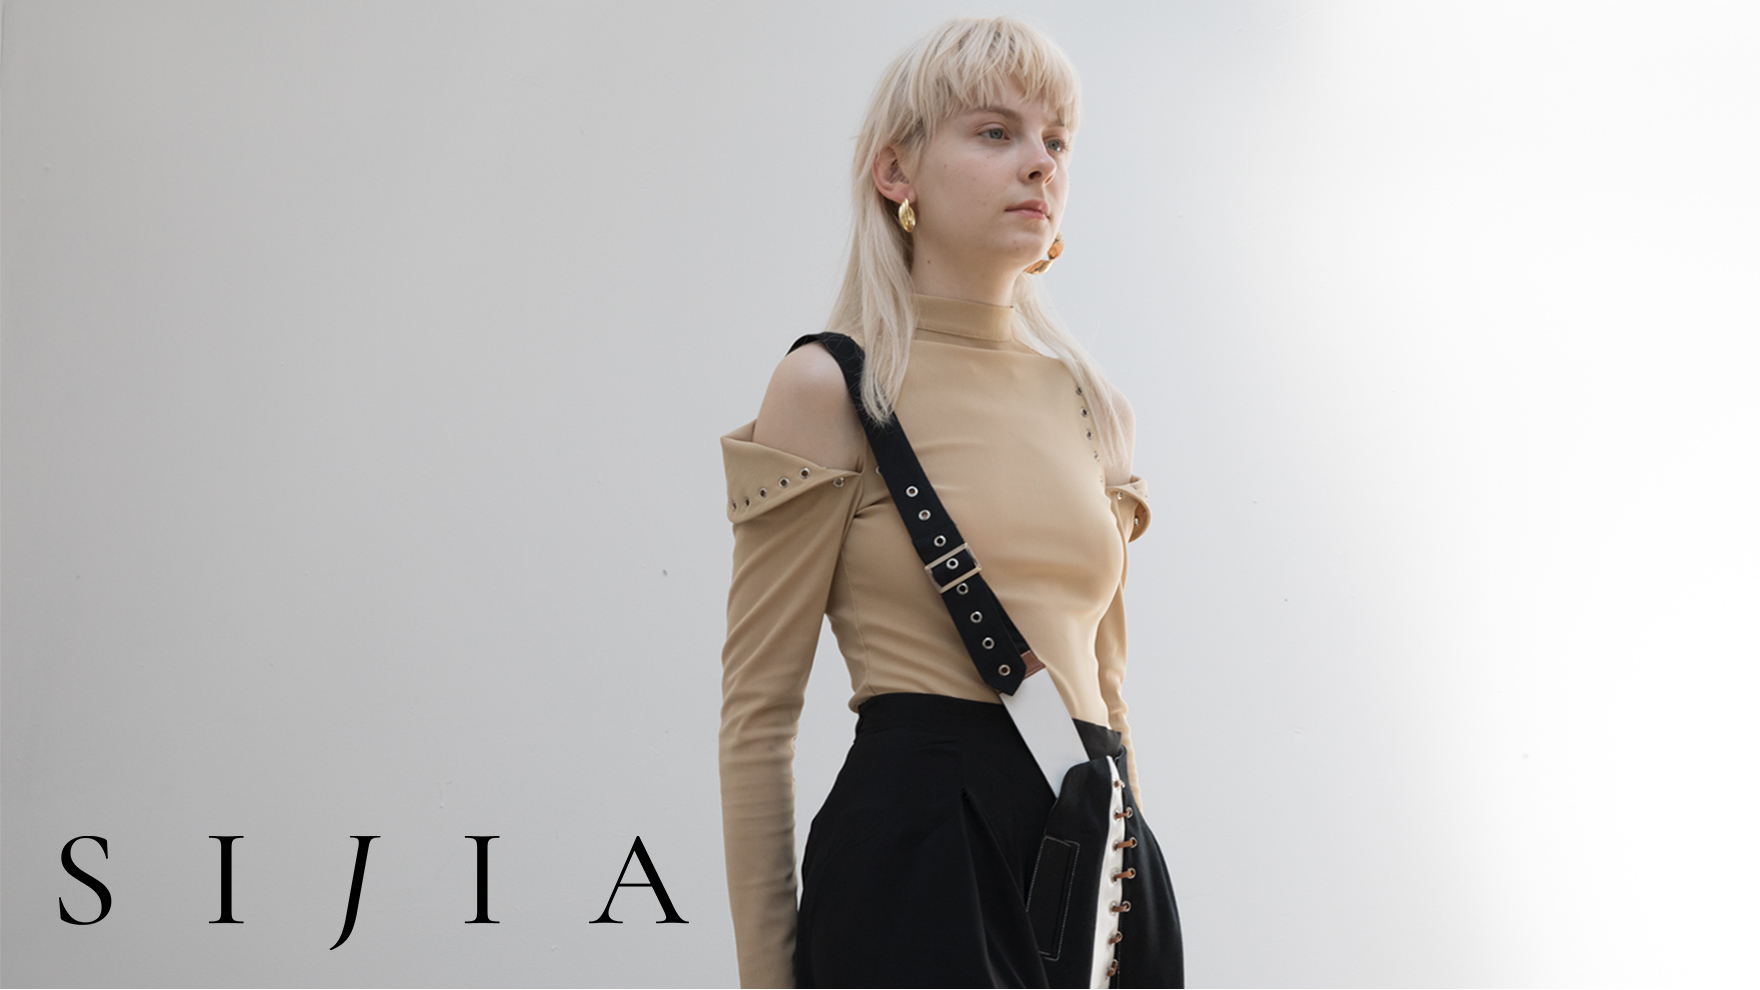 Sijia Jiang London College Of Fashion 2019